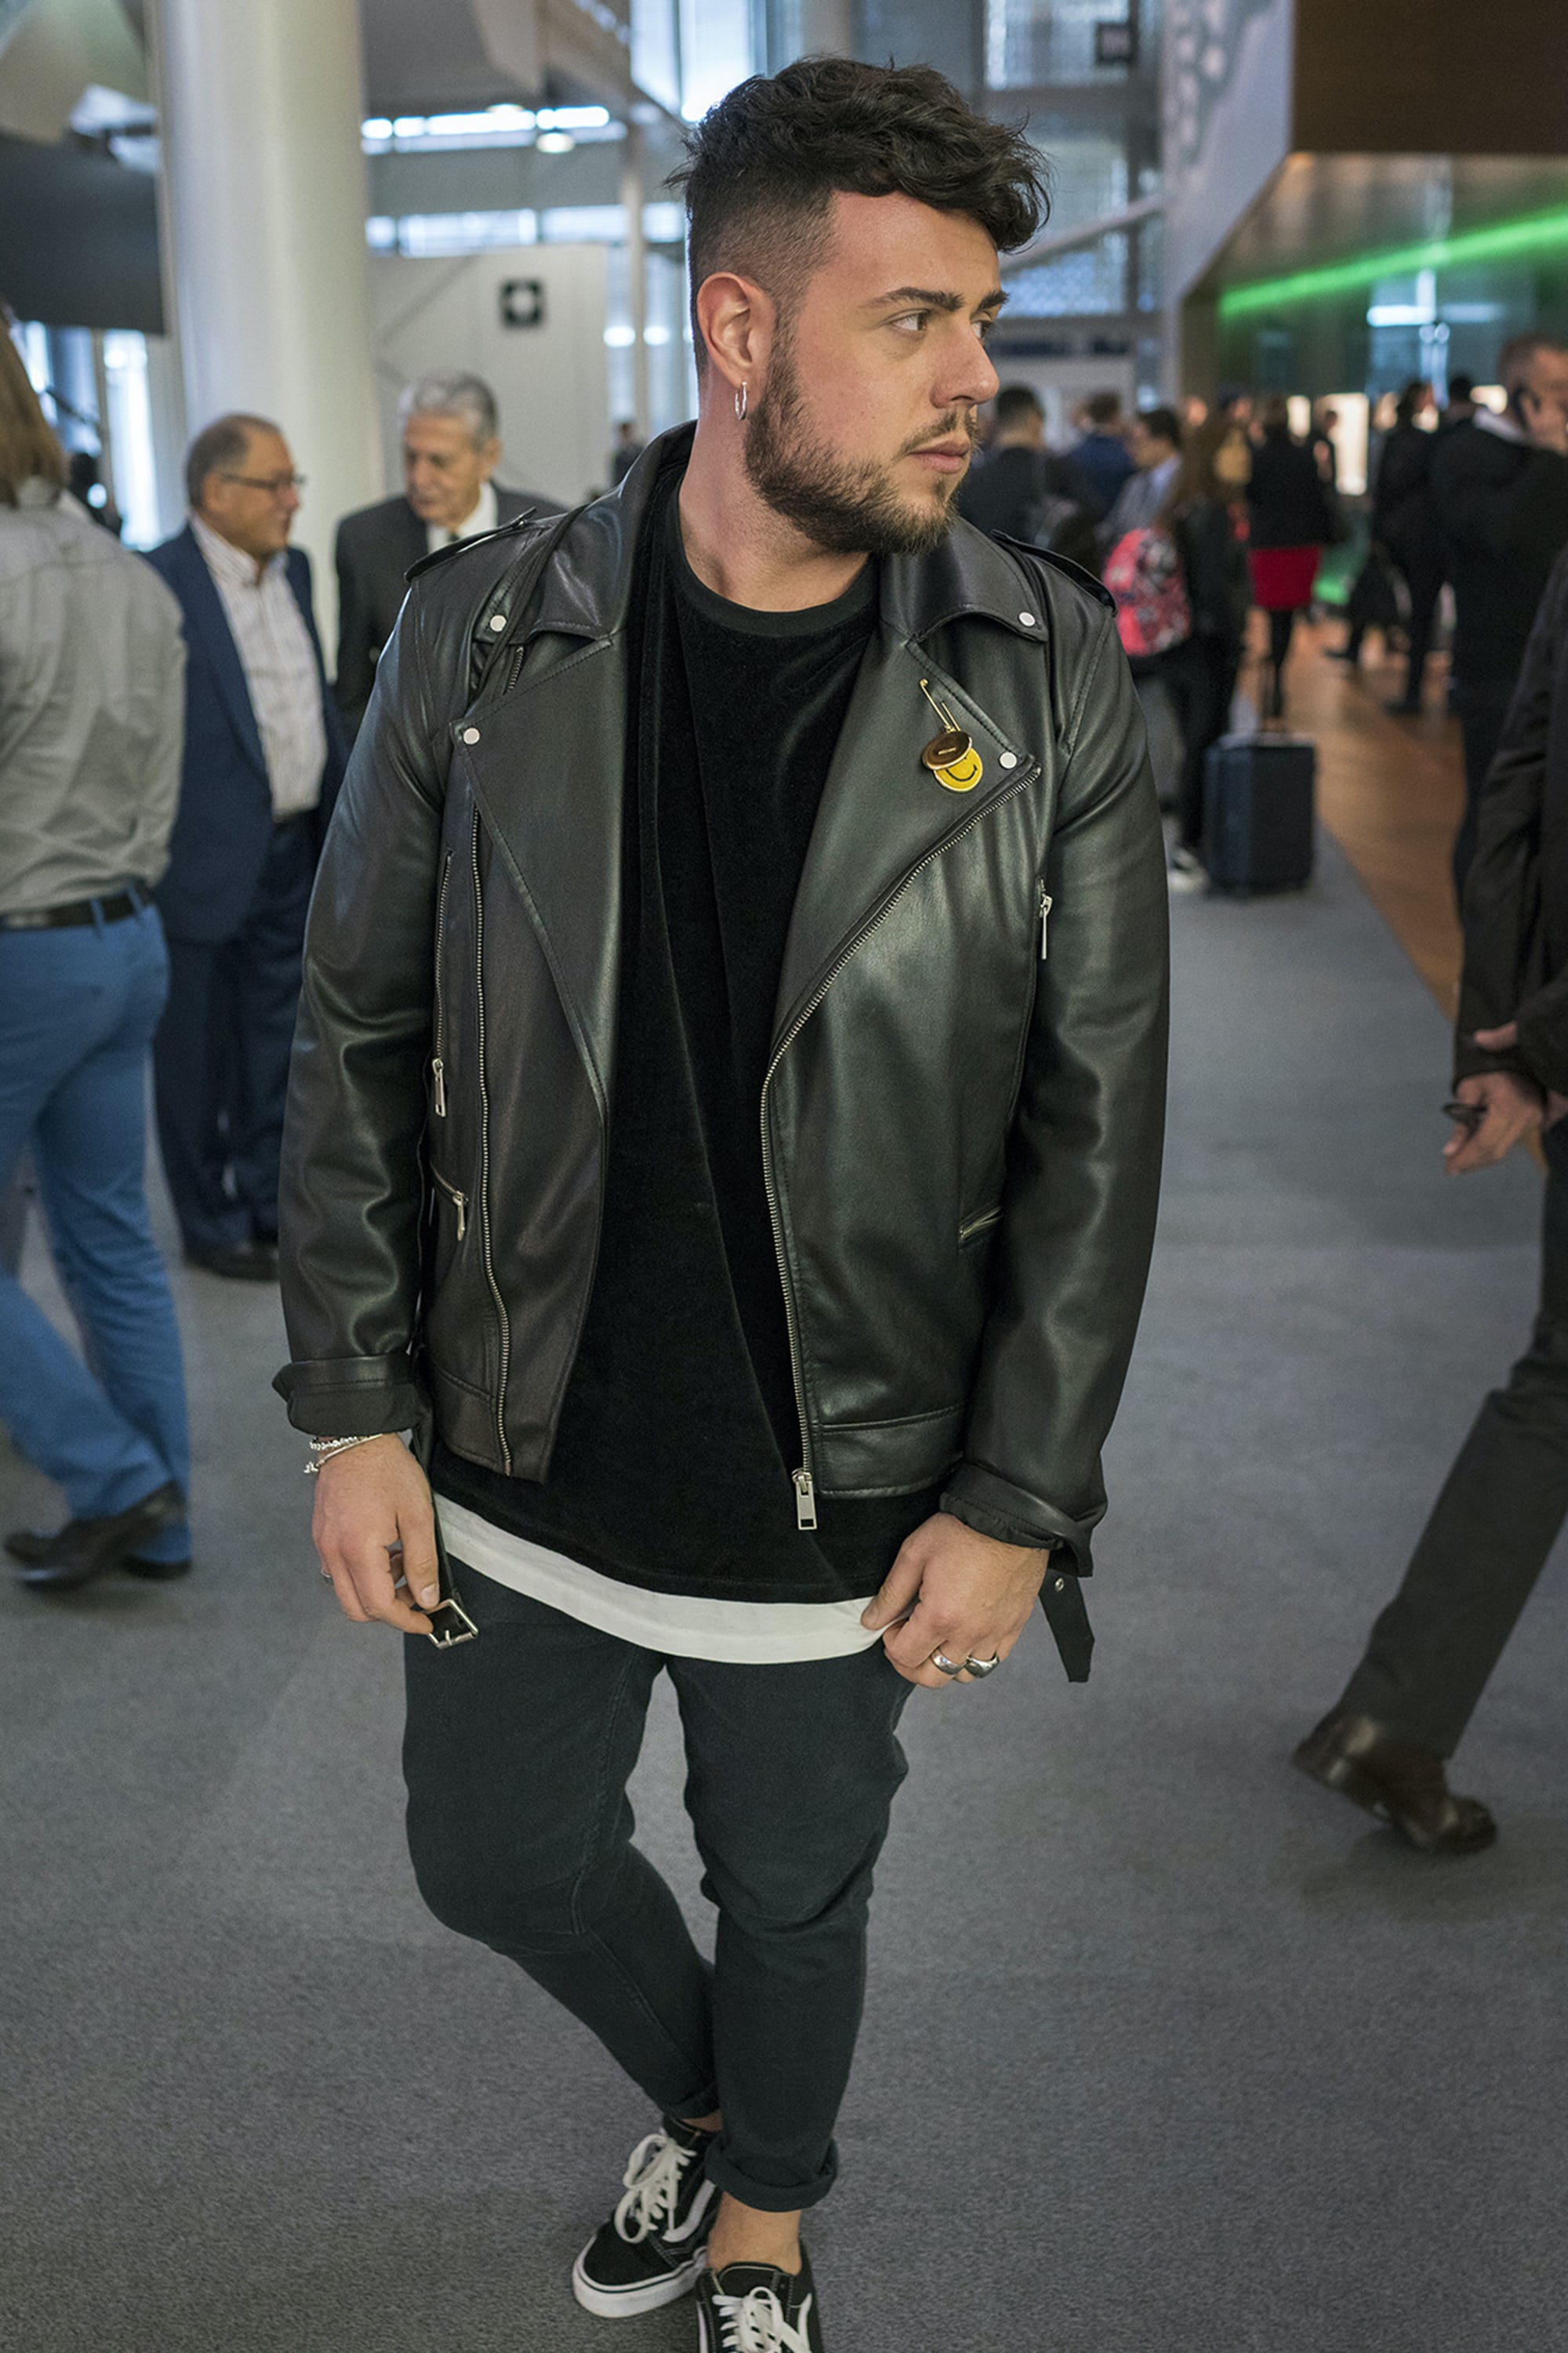 Photo Report: The Fashion And Watches Of Baselworld 2018 Photo Report: The Fashion And Watches Of Baselworld 2018 DSC00804 copy